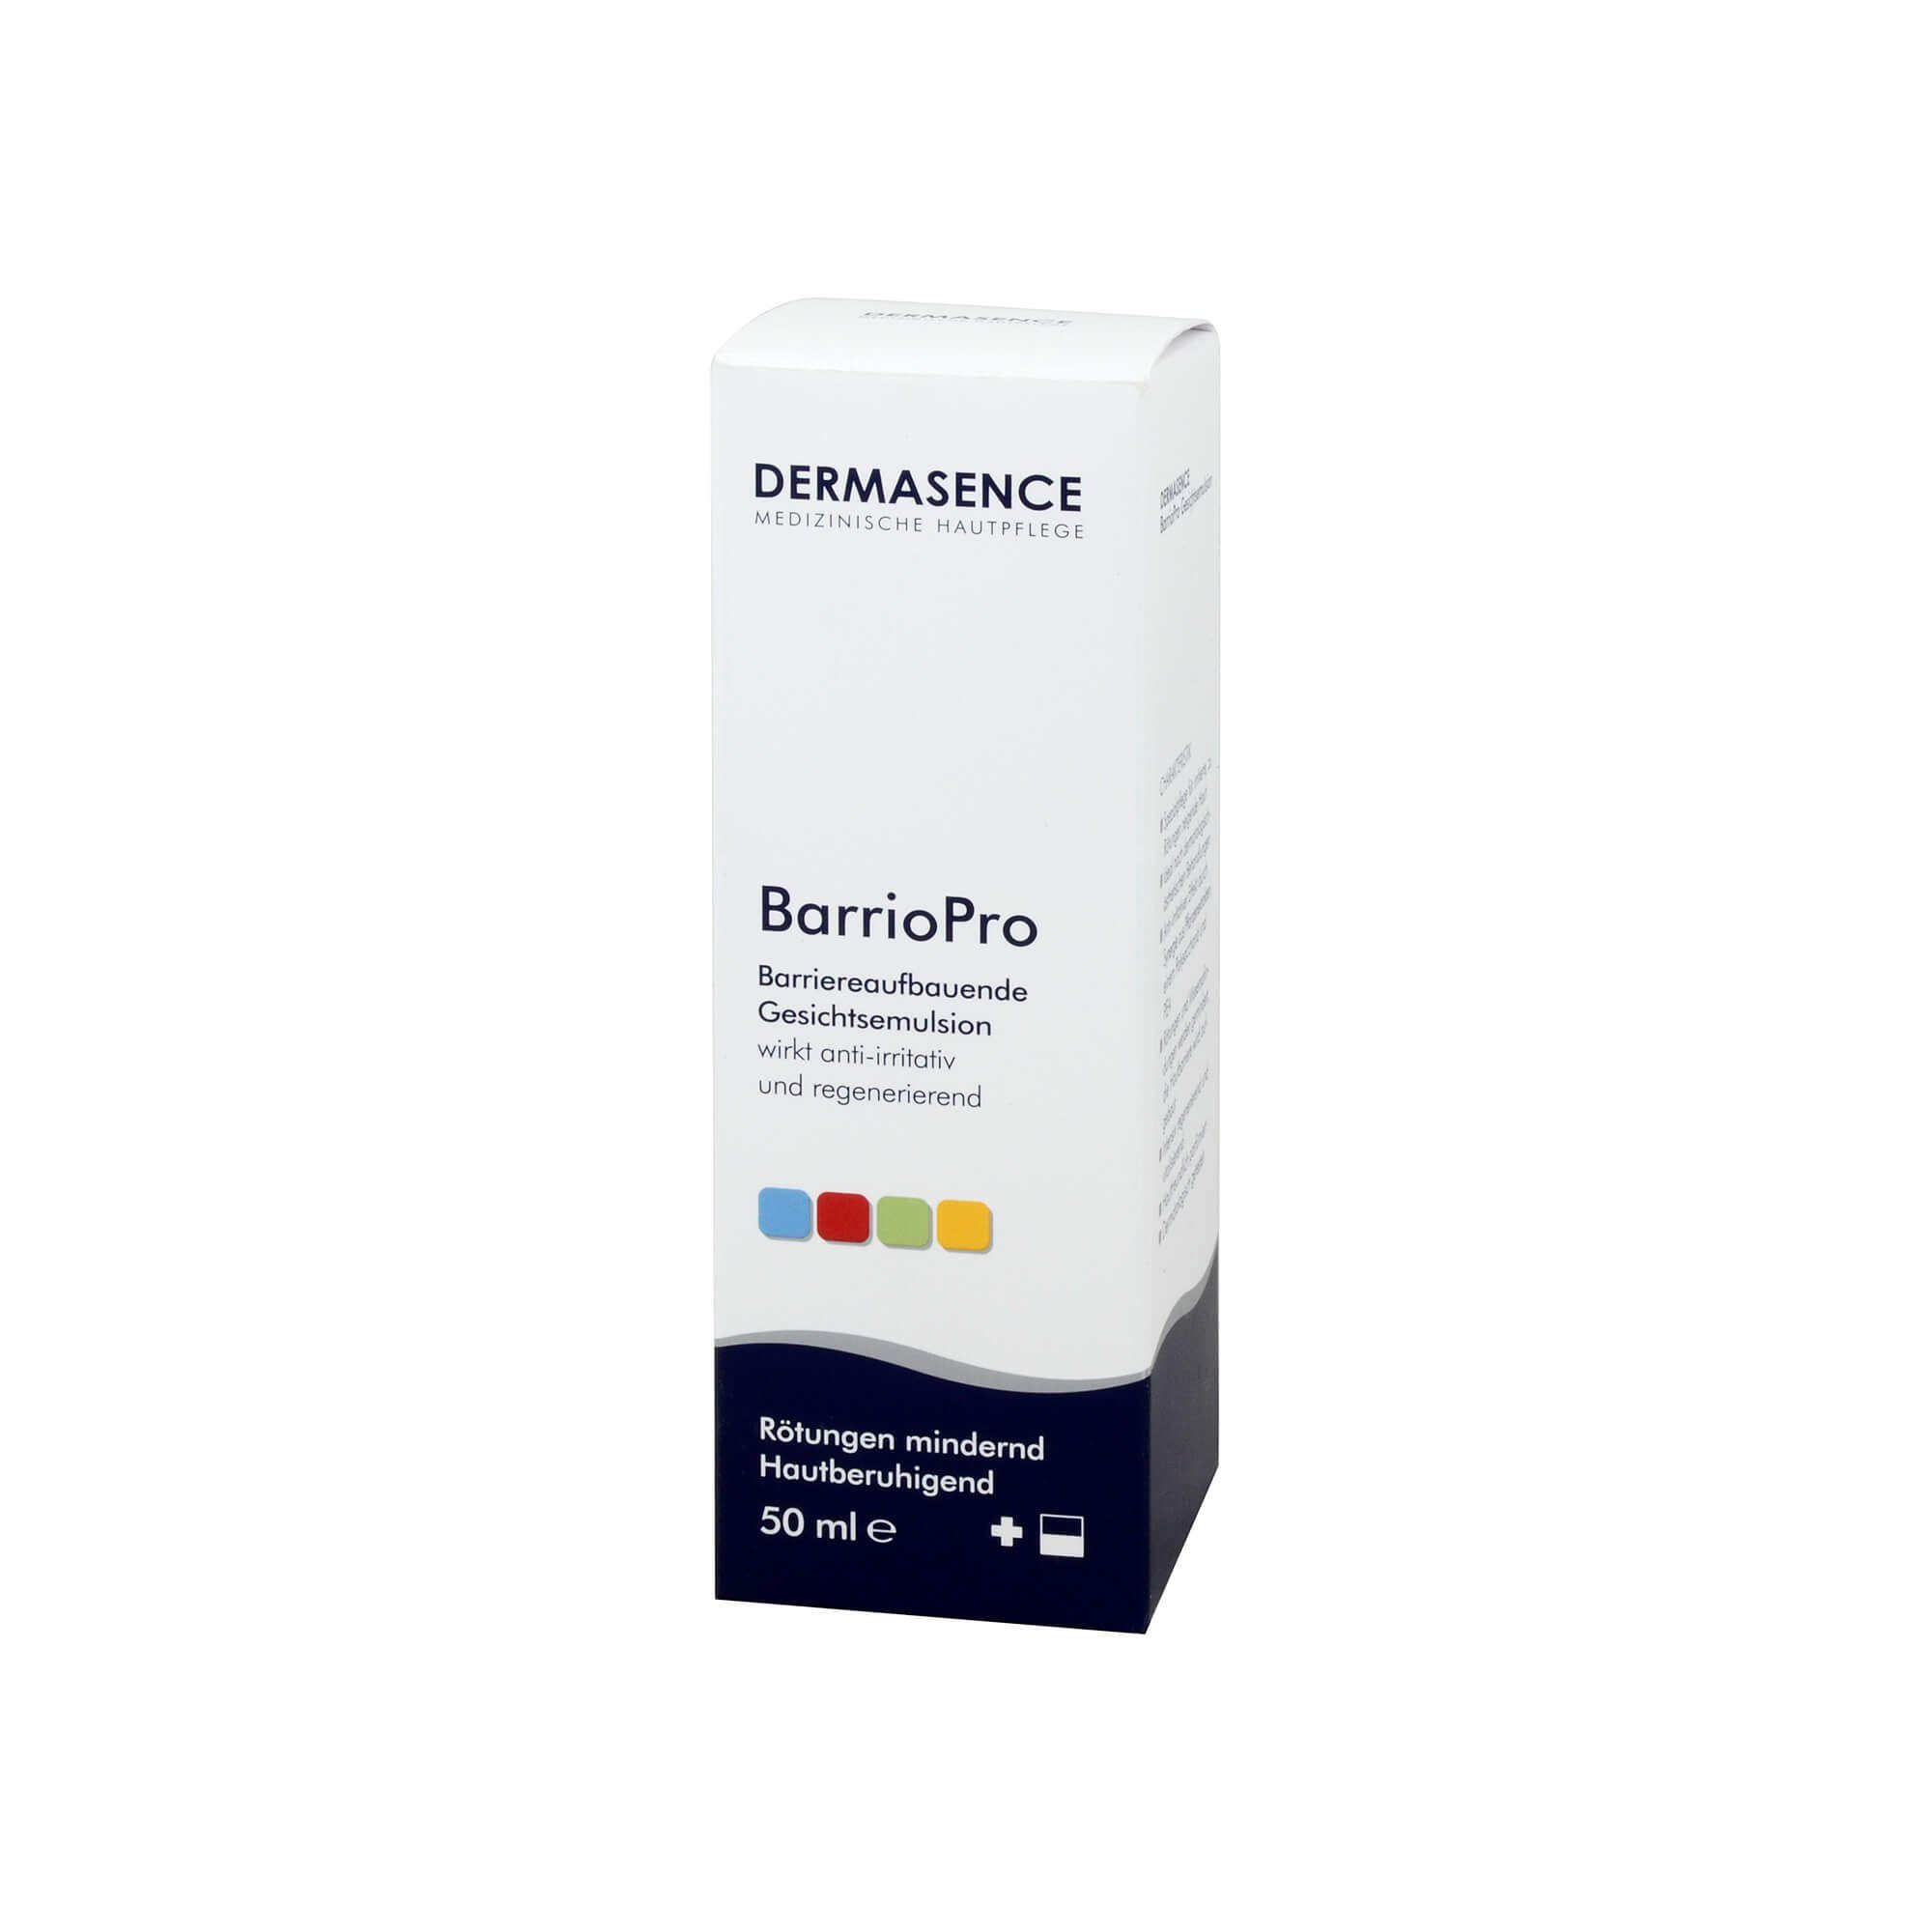 Dermasence BarrioPro, 50 ml